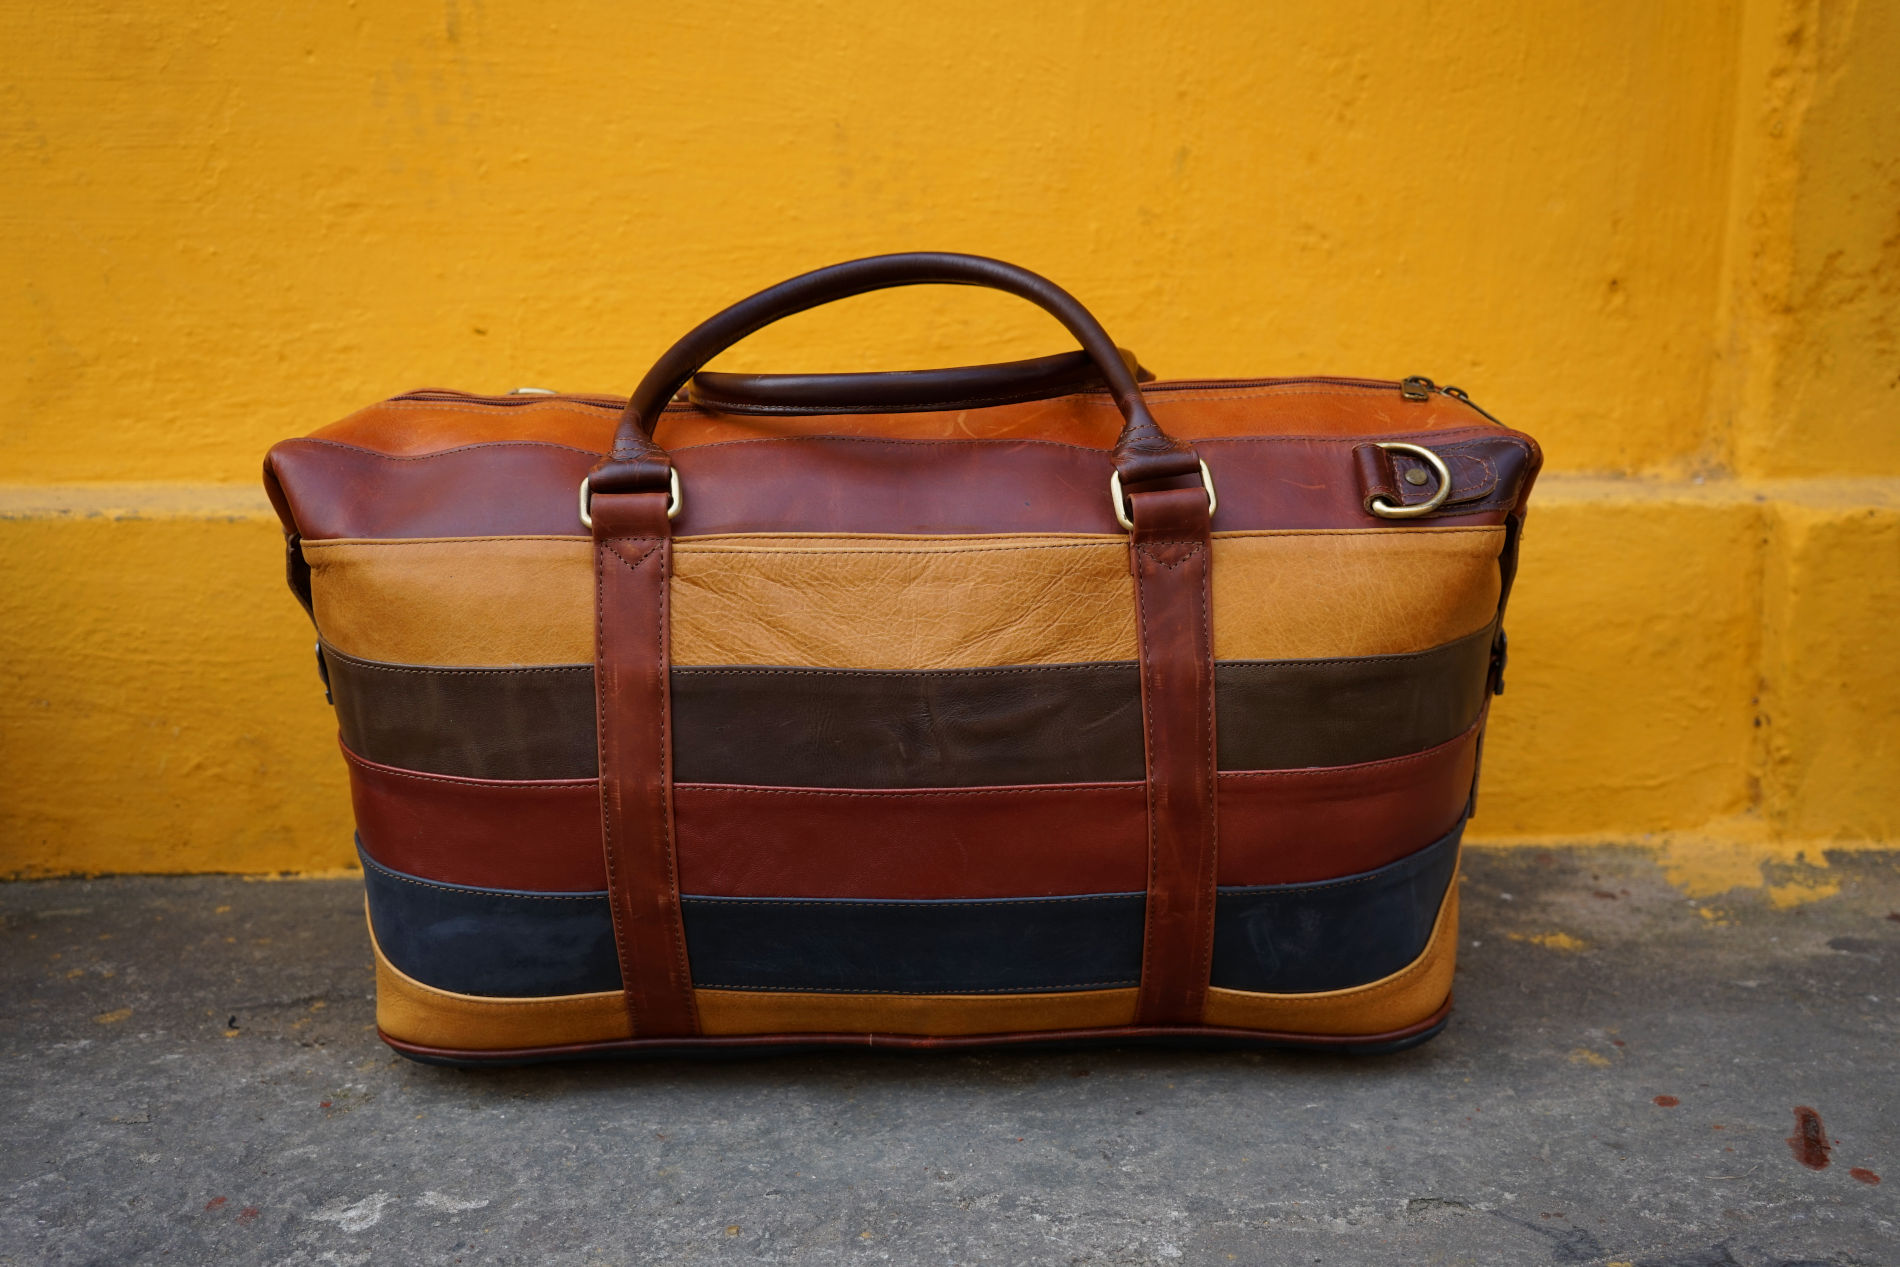 Da Bao - Leather Shop - Buffalo leather duffle bag with colorful stripes